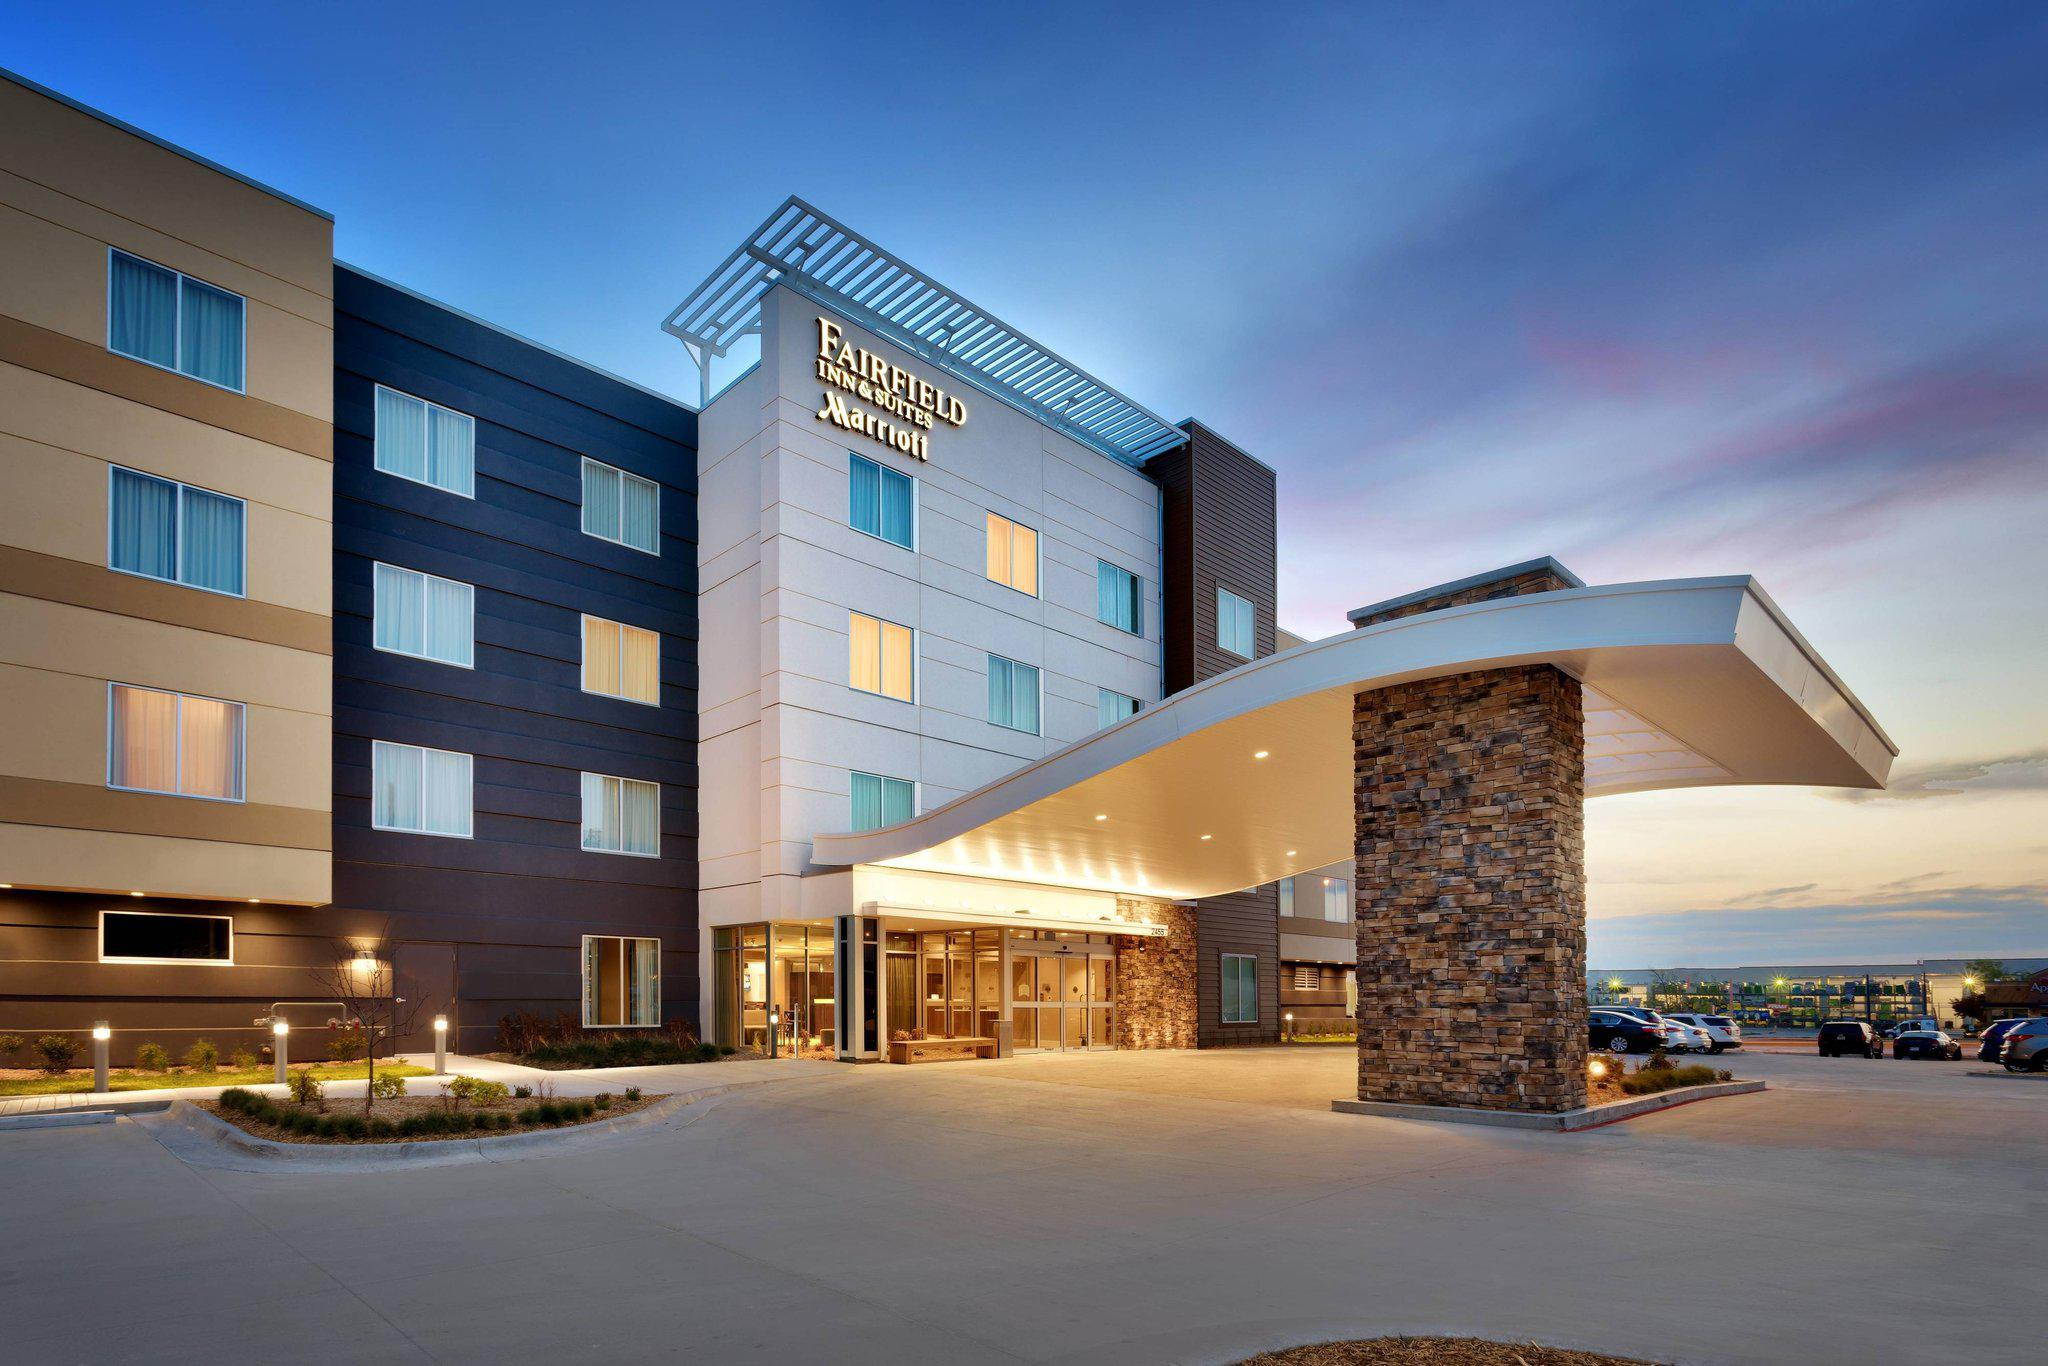 Fairfield Inn & Suites by Marriott Springfield North